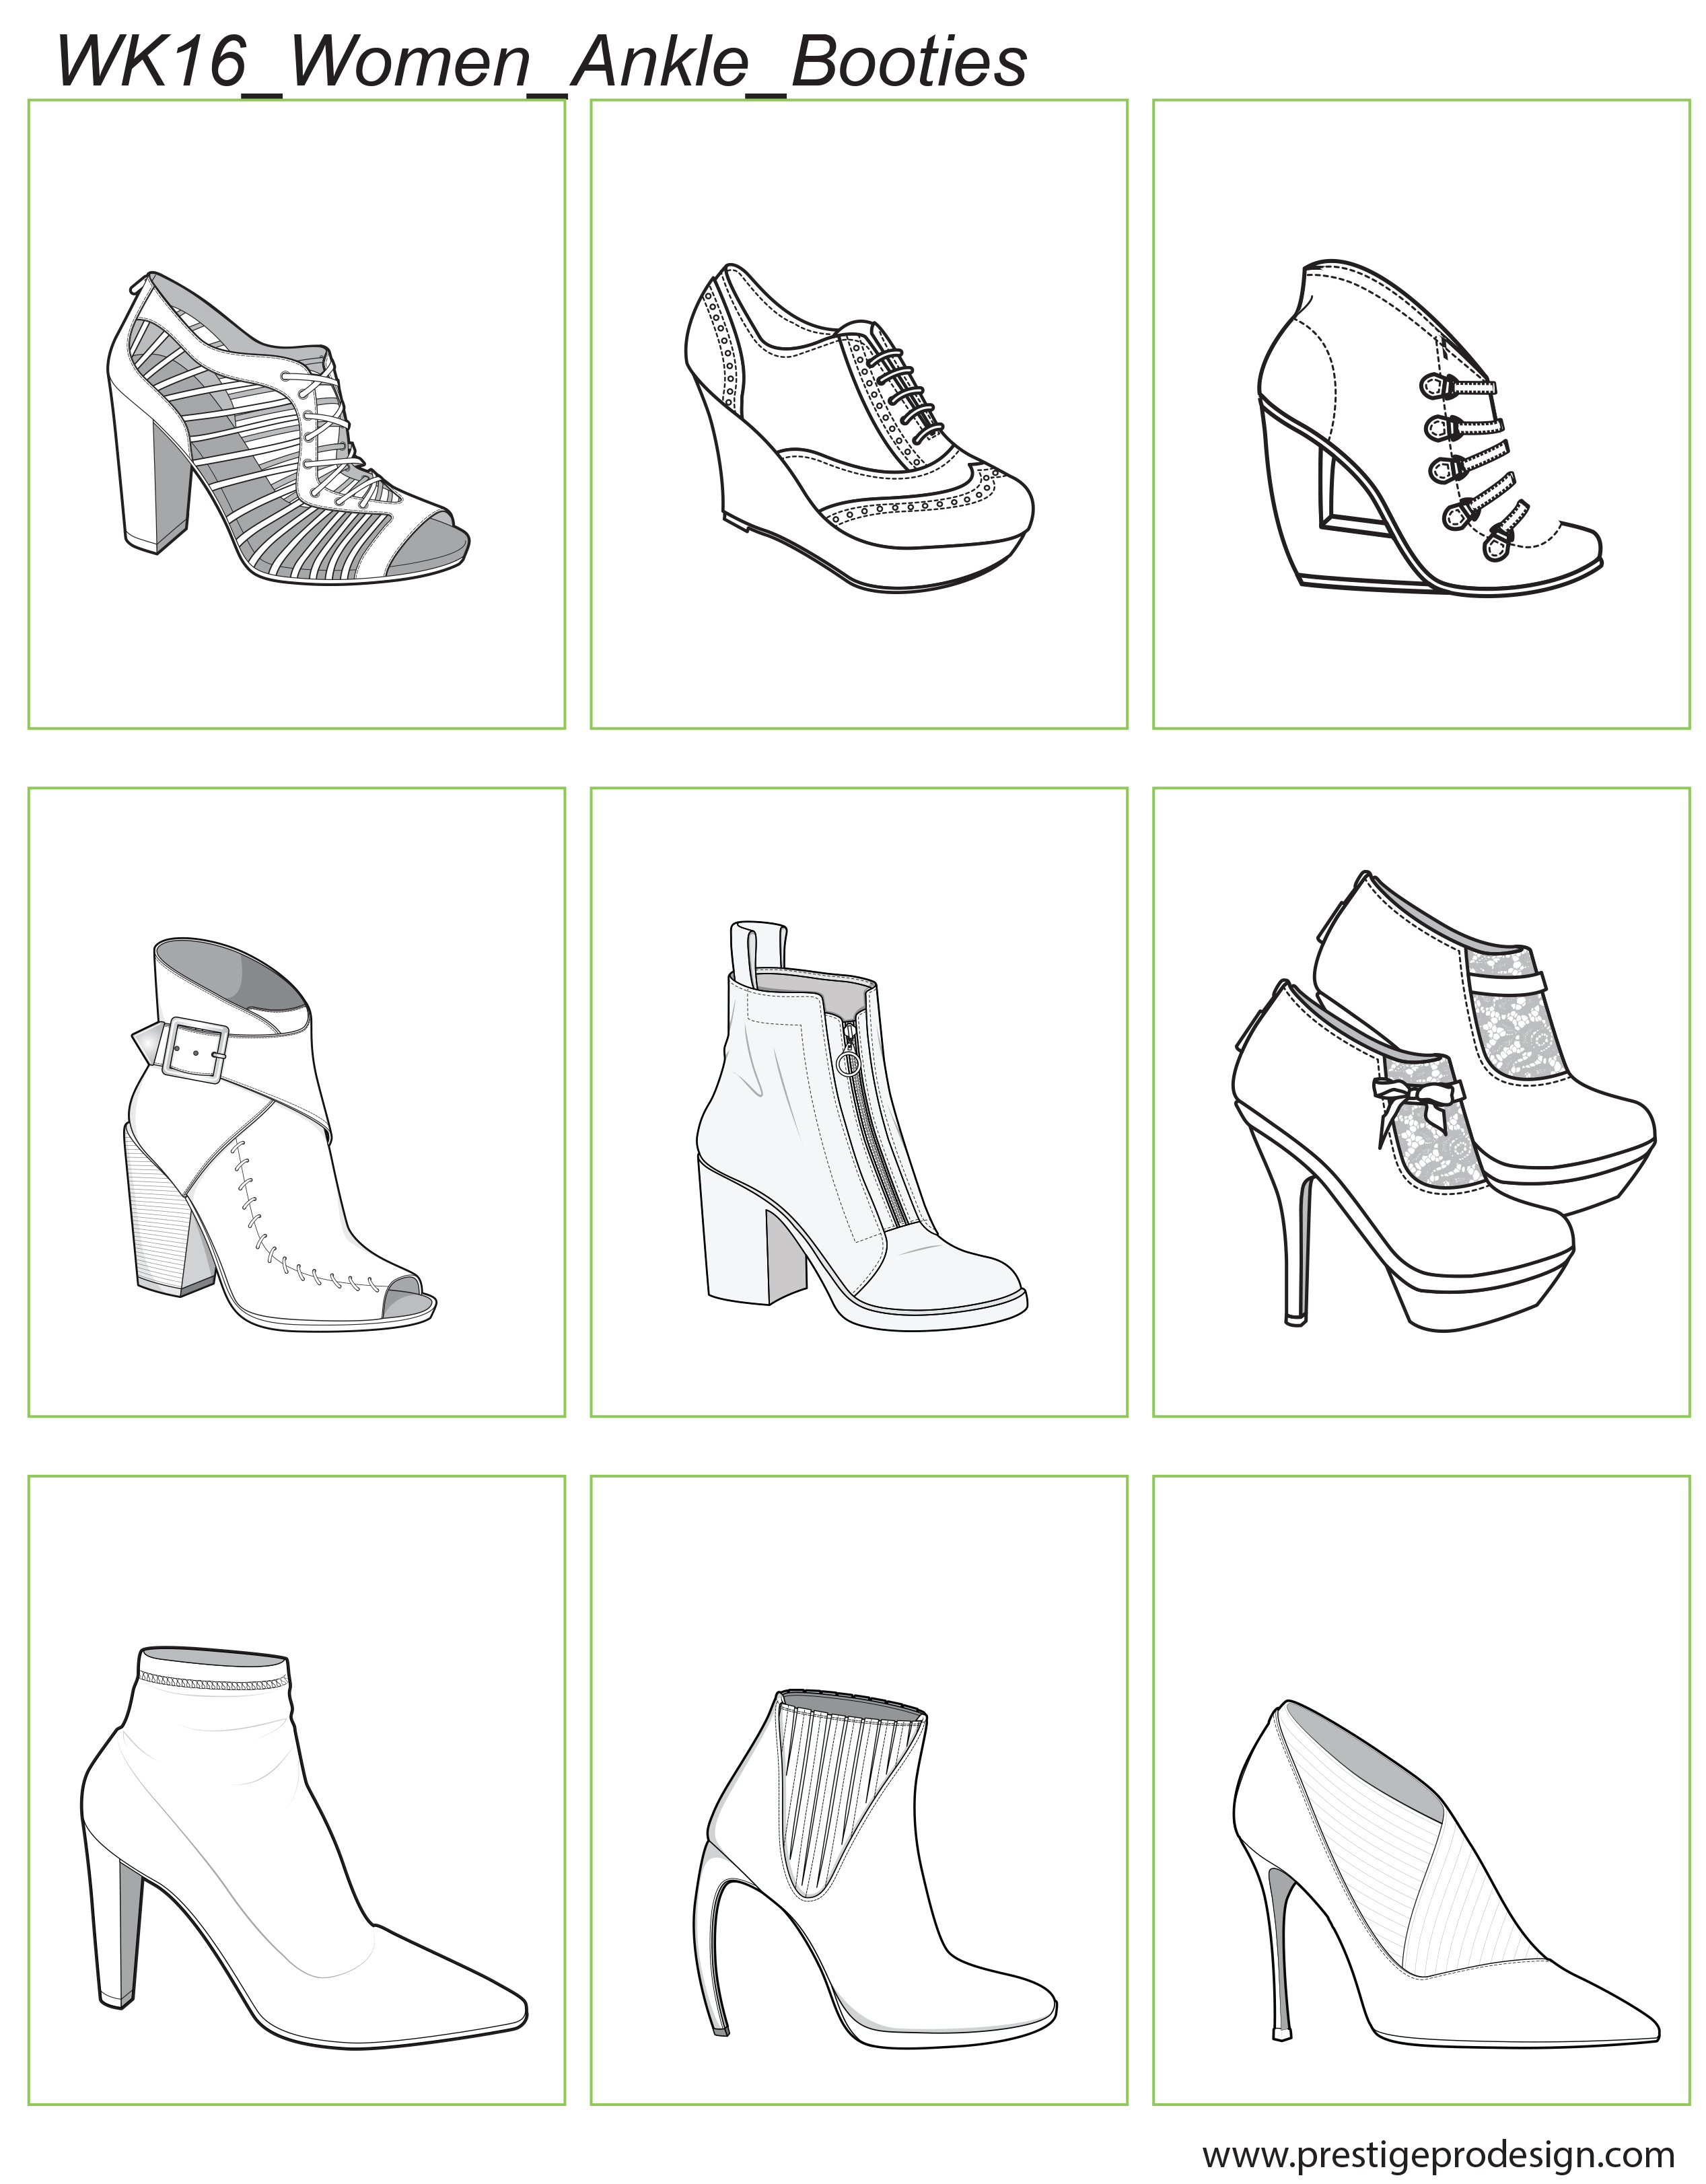 WK16_Women_Ankle_Booties